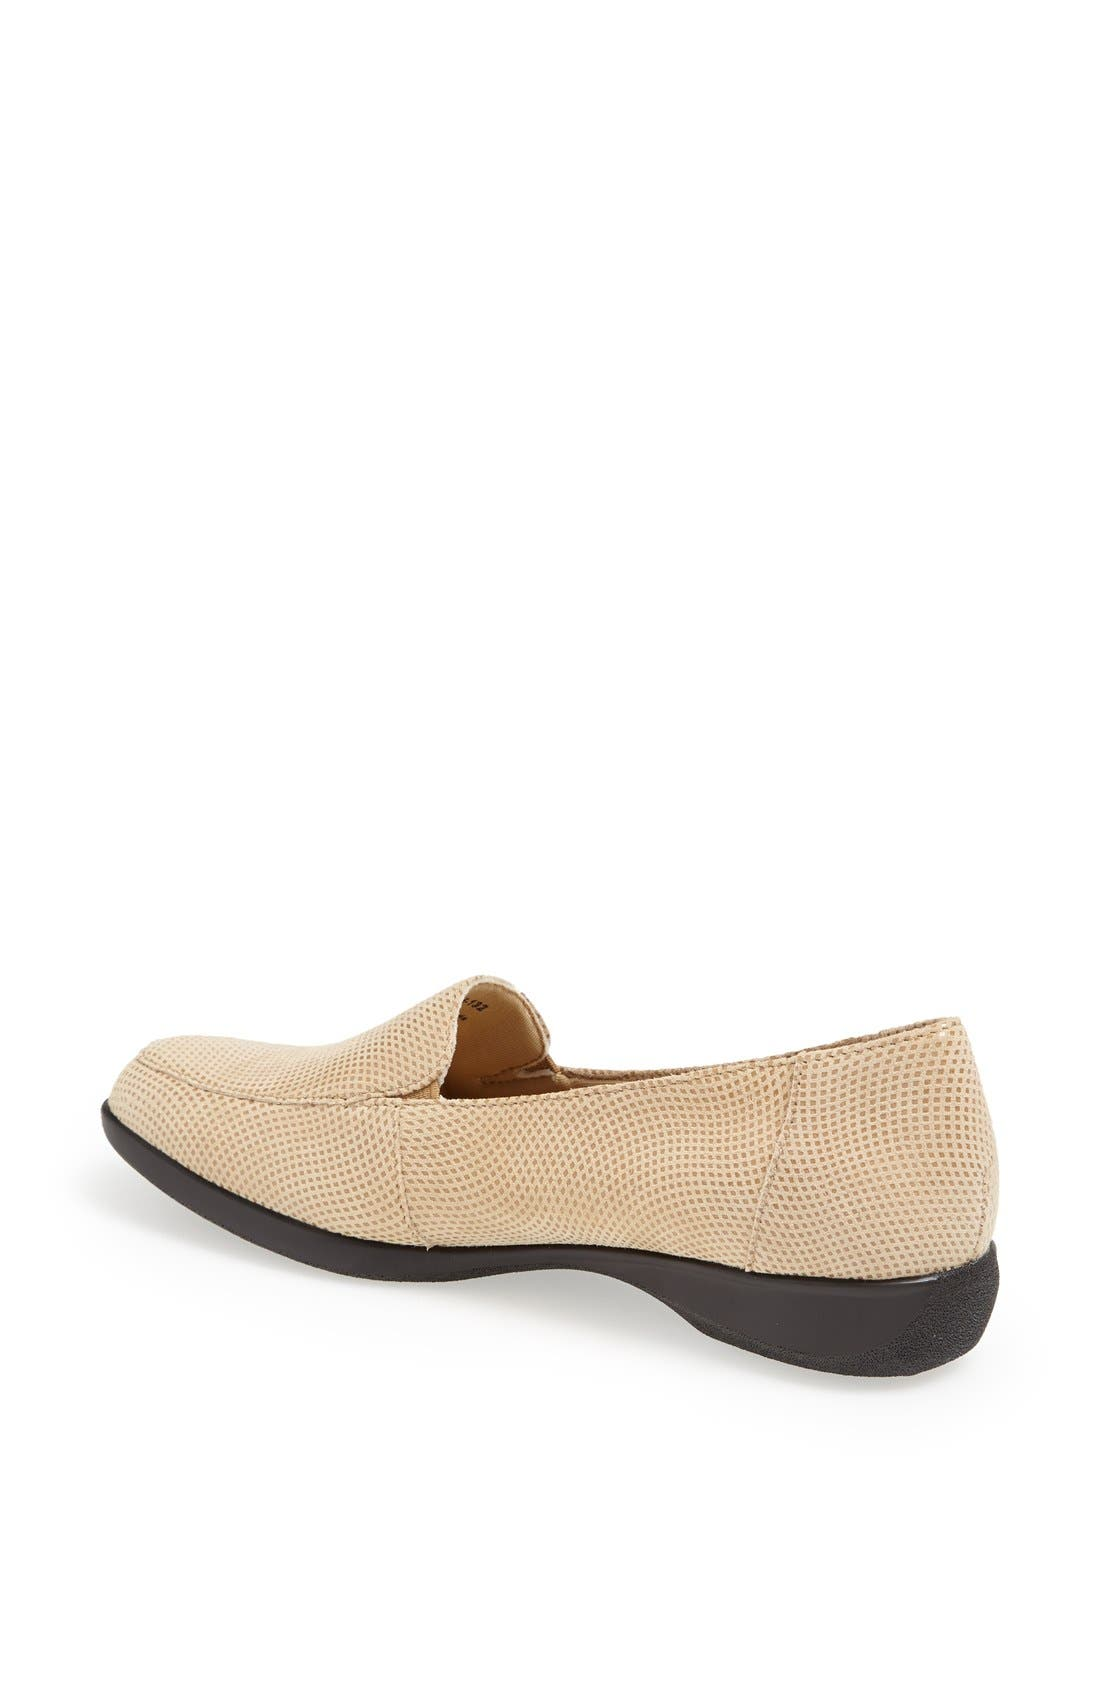 'Jenn' Loafer,                             Alternate thumbnail 2, color,                             Nude Mini Dot